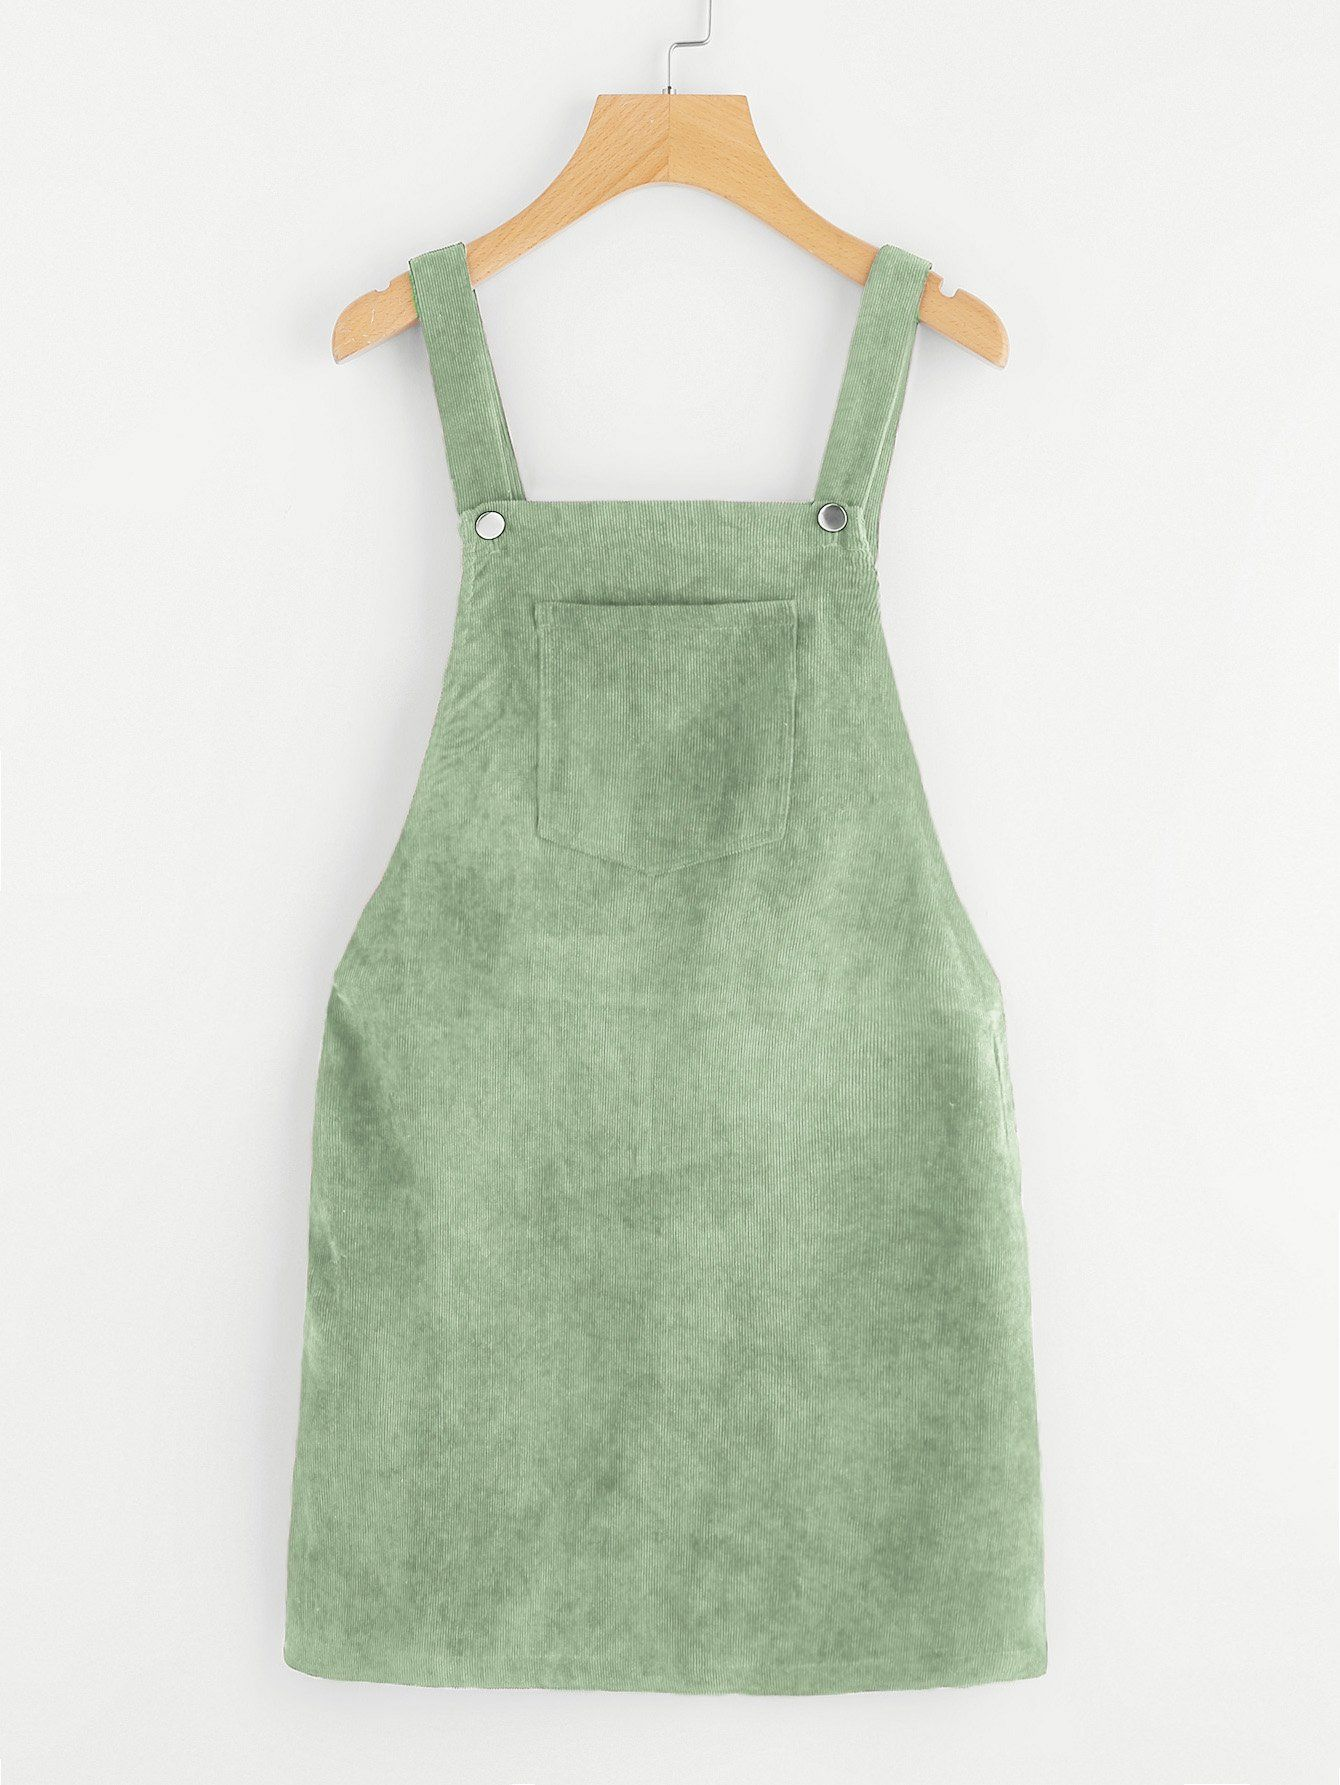 Bib Pocket Front Overall Dress Overall Dress Fashion Clothes [ 1785 x 1340 Pixel ]